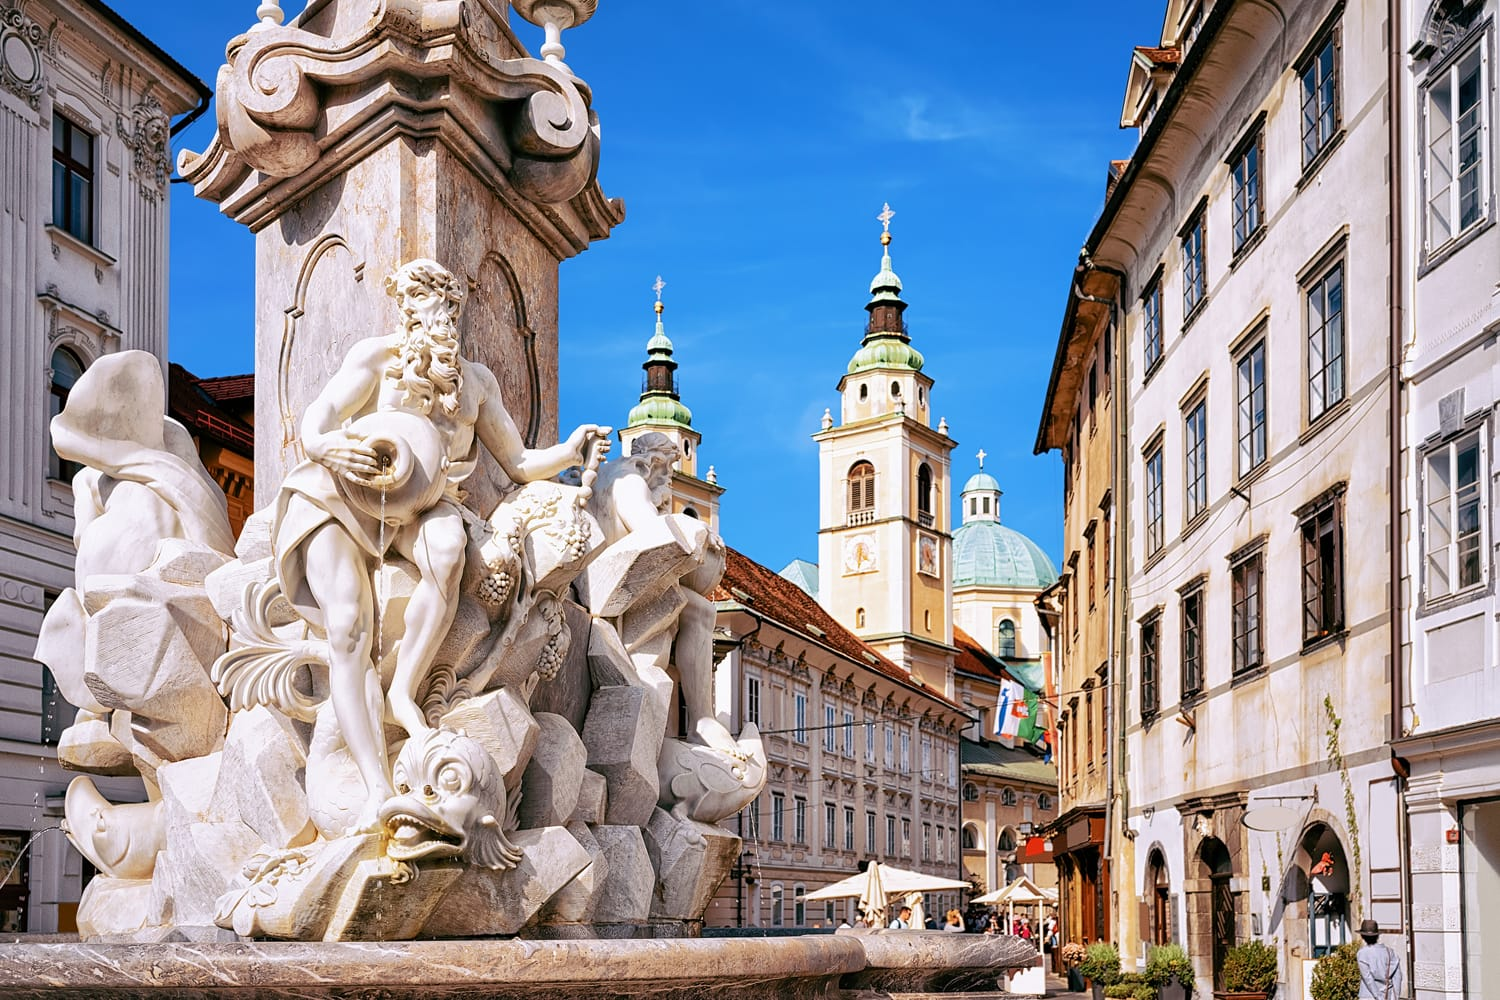 Fragment of Robba fountain in the historical center of Ljubljana, Slovenia. Ljubljana Cathedral on the background